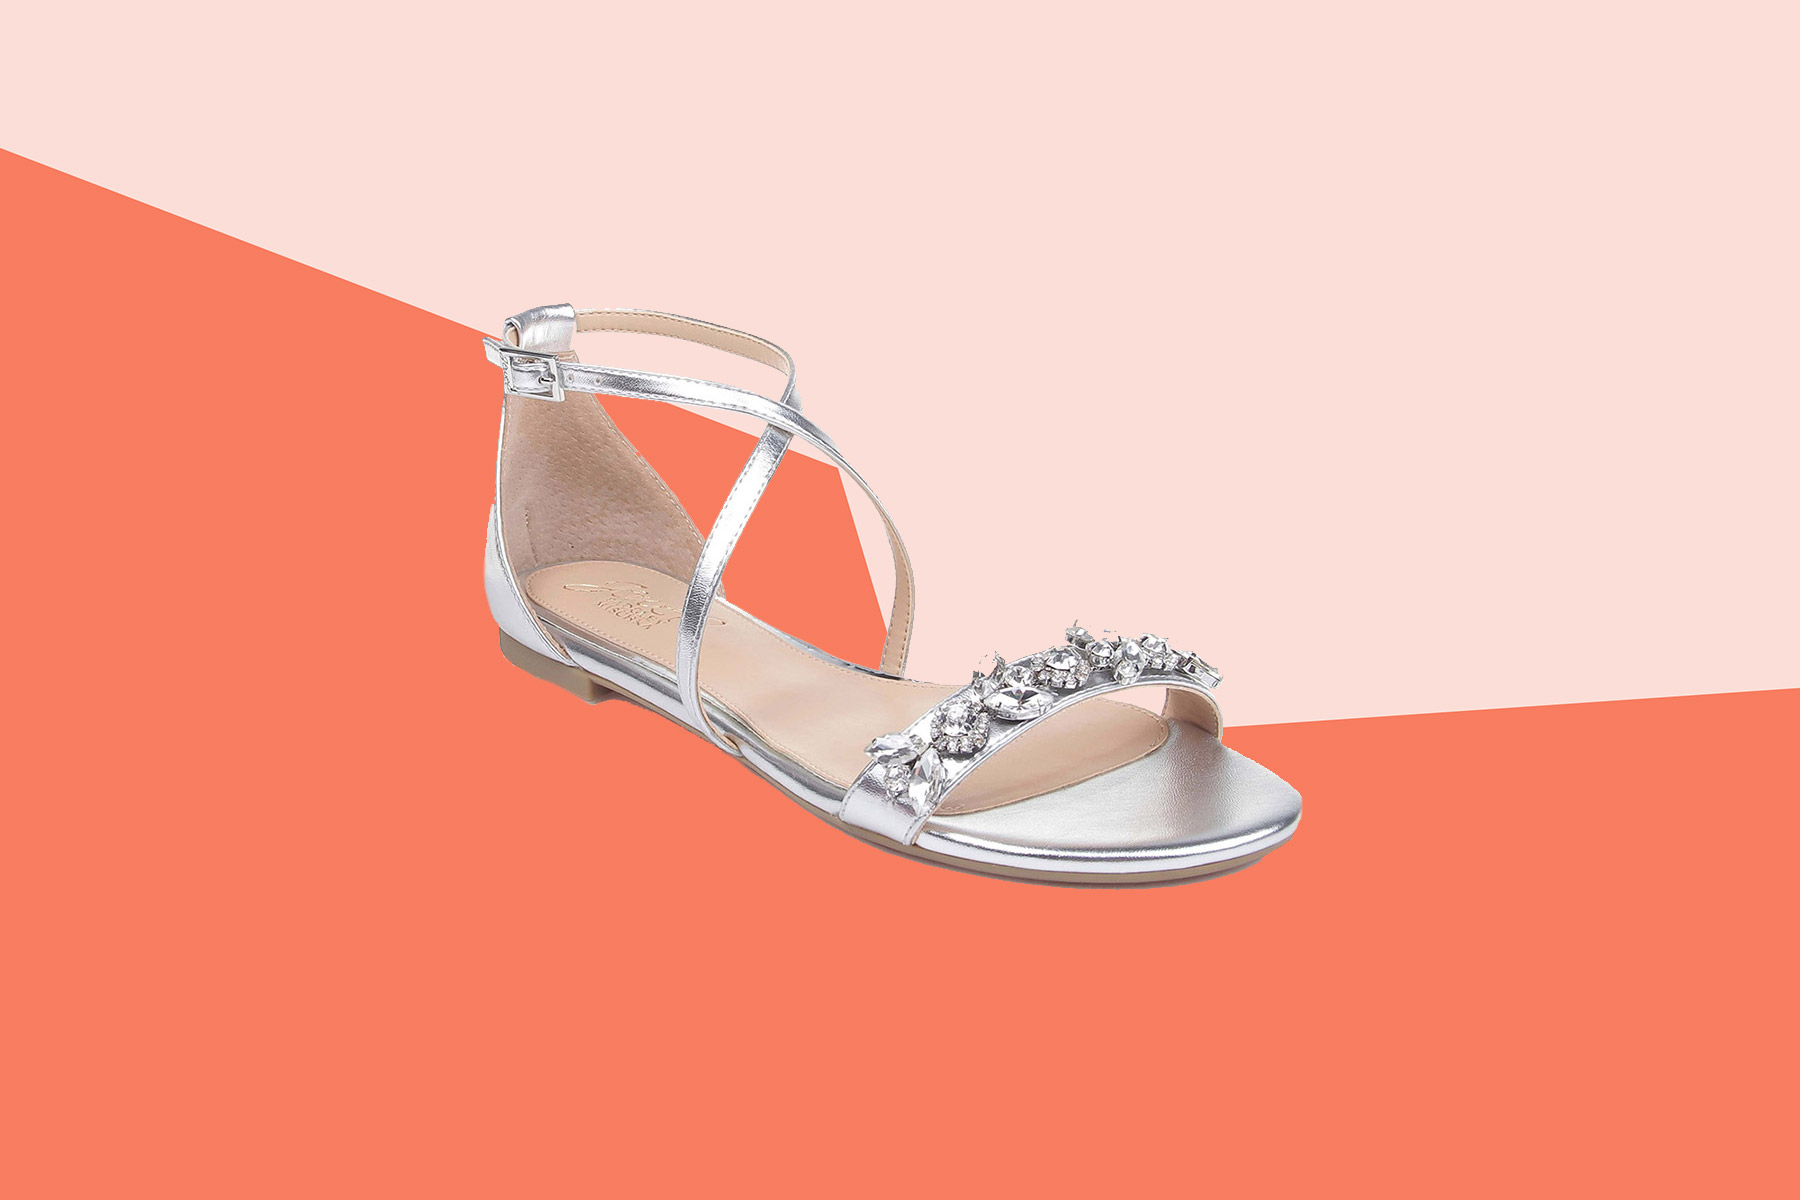 b0a8fa1373d0 9 Best Wedding Flats That Make Comfortable Bridal Shoes | Real Simple